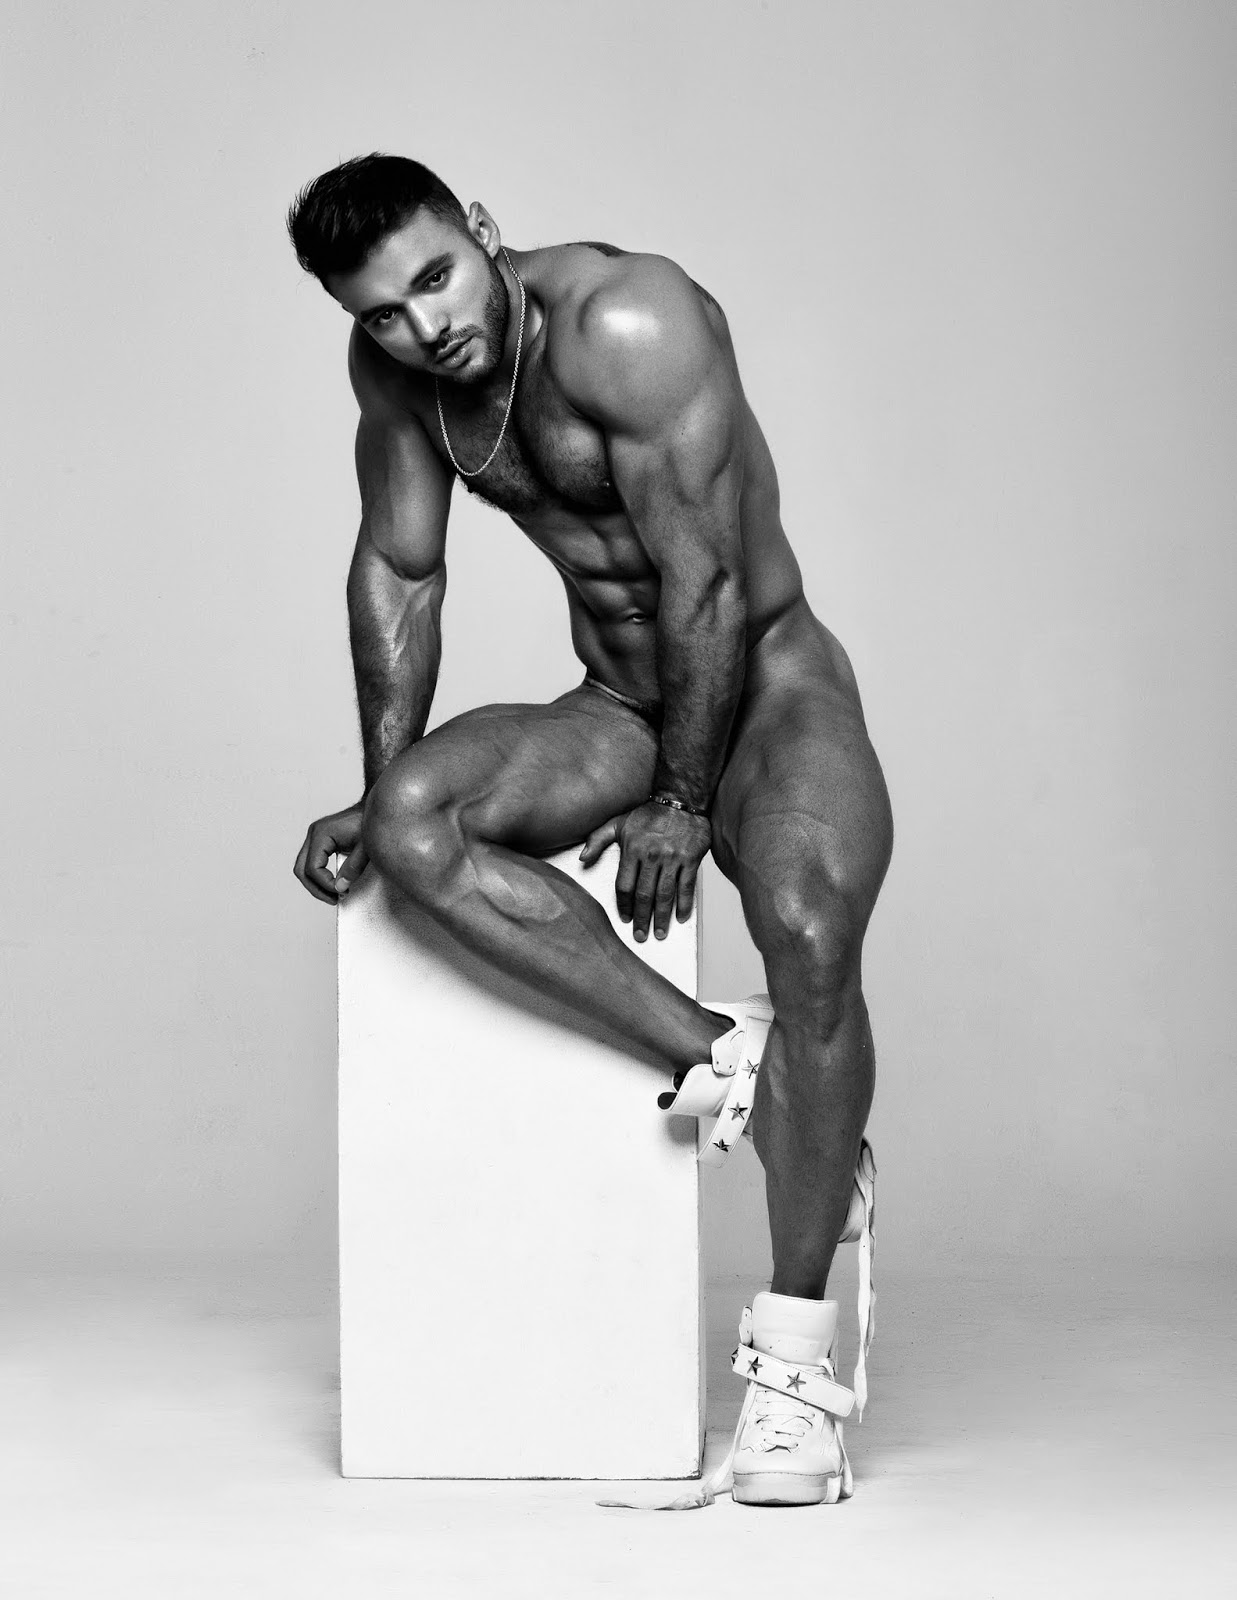 AlfreD HerrerA, by Joan Crisol ft Alfred Herrera exclusive for LOVE|SEXO Magazine (NSFW).